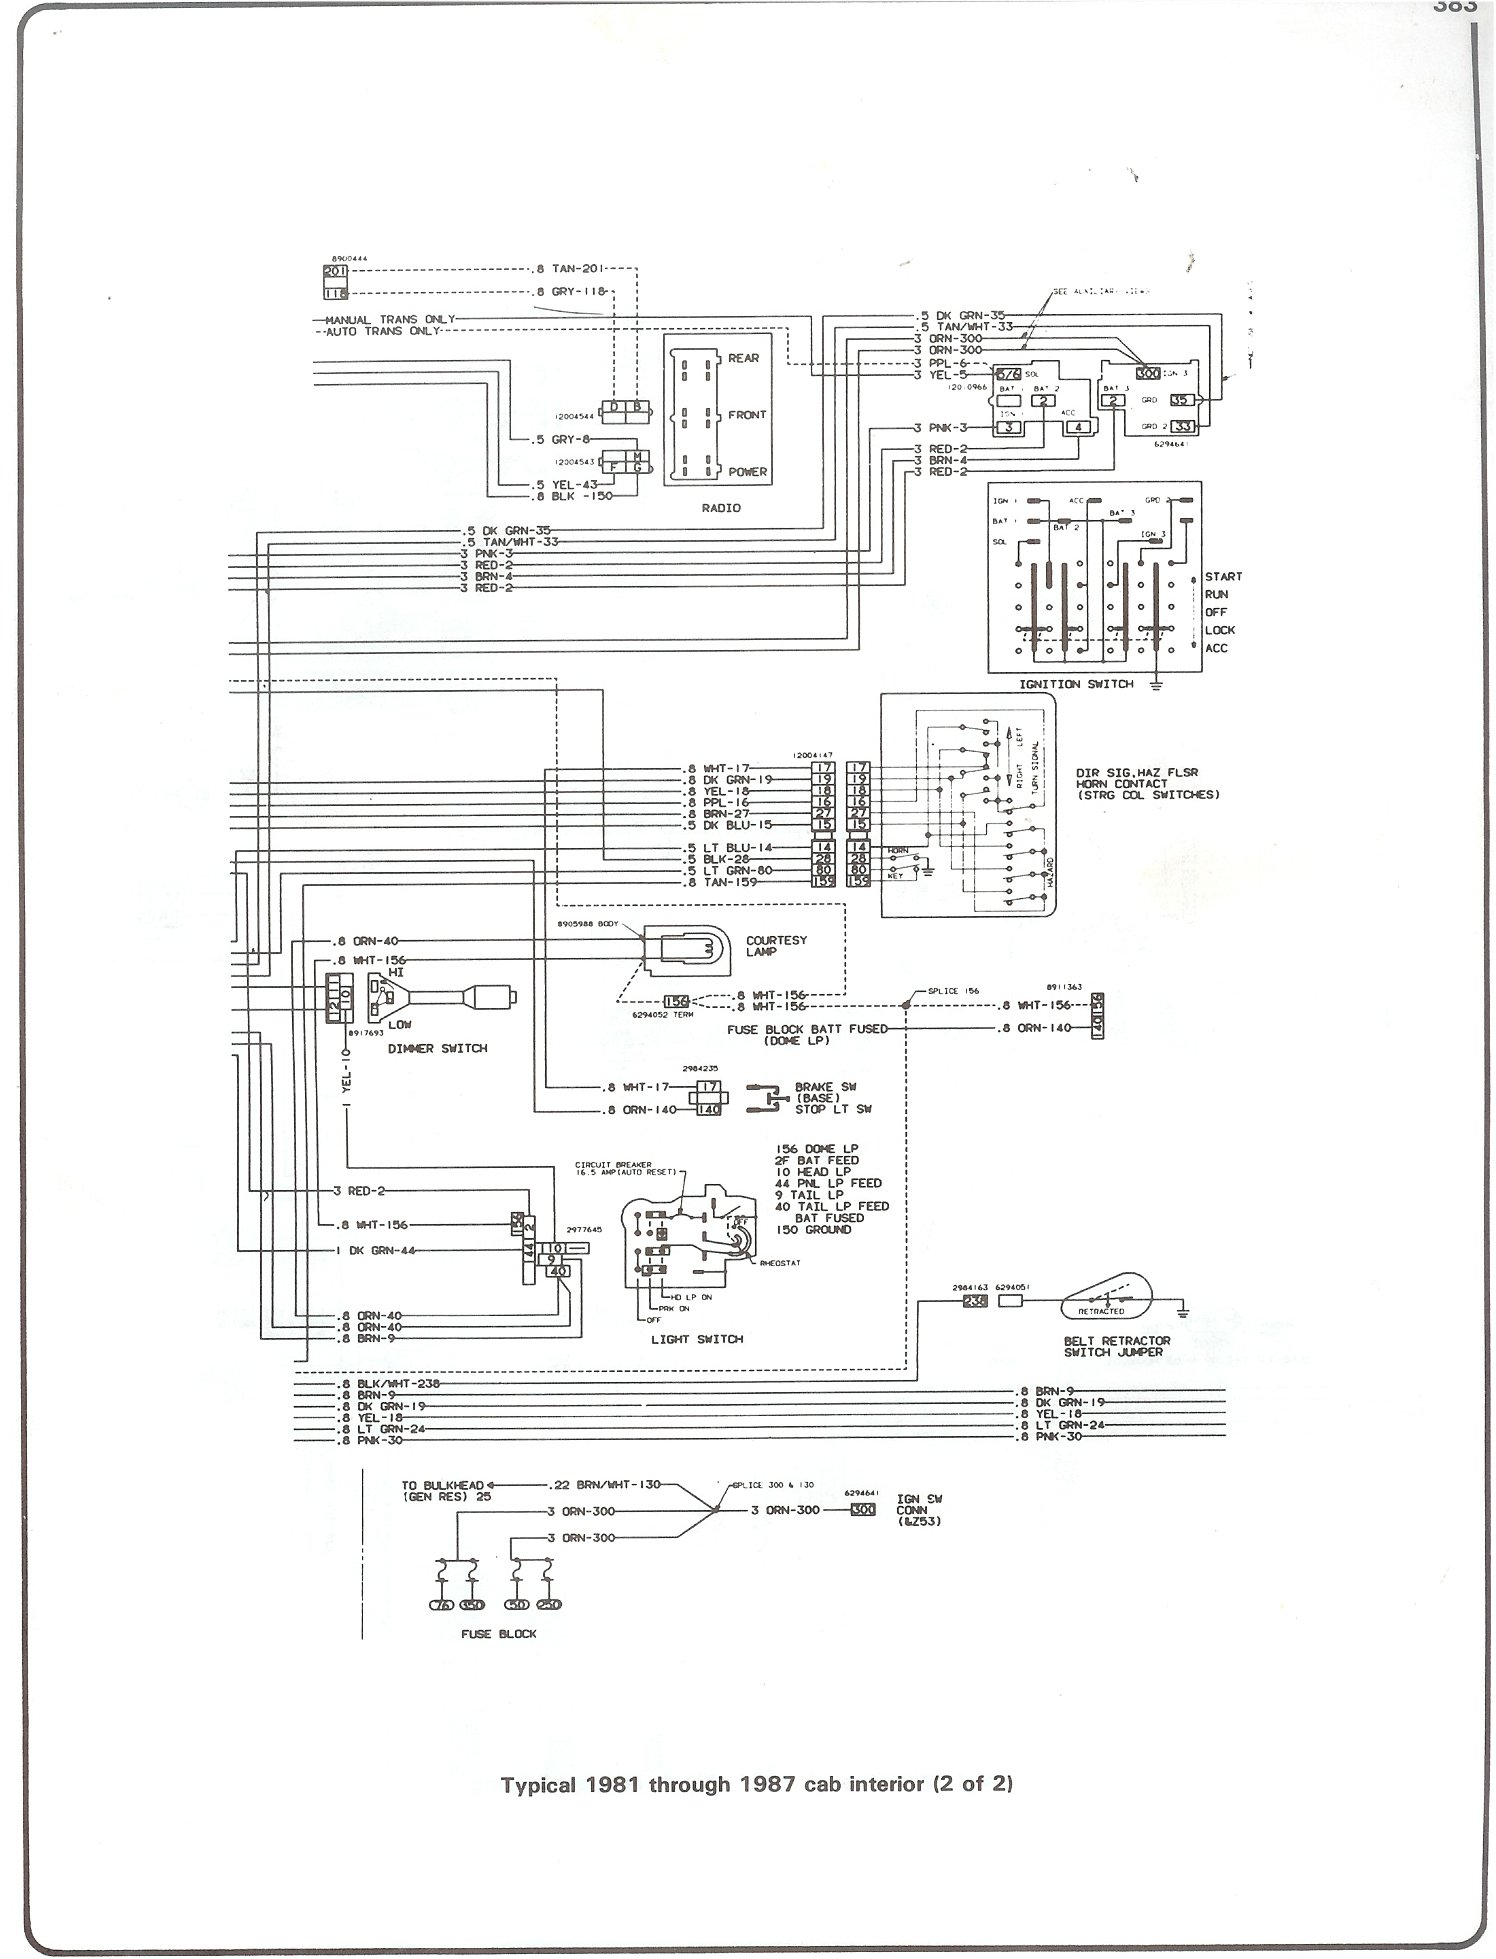 Chevy Cheyenne Fuse Box Diagram | Wiring Liry on fuse panel relay diagram, 2010 f150 fuse panel diagram, fuse panel plug, fuse panel cover, dodge fuse panel diagram, corvette fuse panel diagram, kenworth t800 fuse panel diagram, fuse panel diagram for 2005 chevy aveo, fuse and relay diagram, instrument panel cluster diagram, ford f-150 fuse panel diagram, 98 ranger fuse diagram, 57 chevy fuse panel diagram, fuse panel cabinet, home circuit breaker panel diagram, 2007 chevy silverado fuse diagram, 2008 ford f450 fuse panel diagram, house fuse panel diagram, fuse panel honda, fuse panel connector,